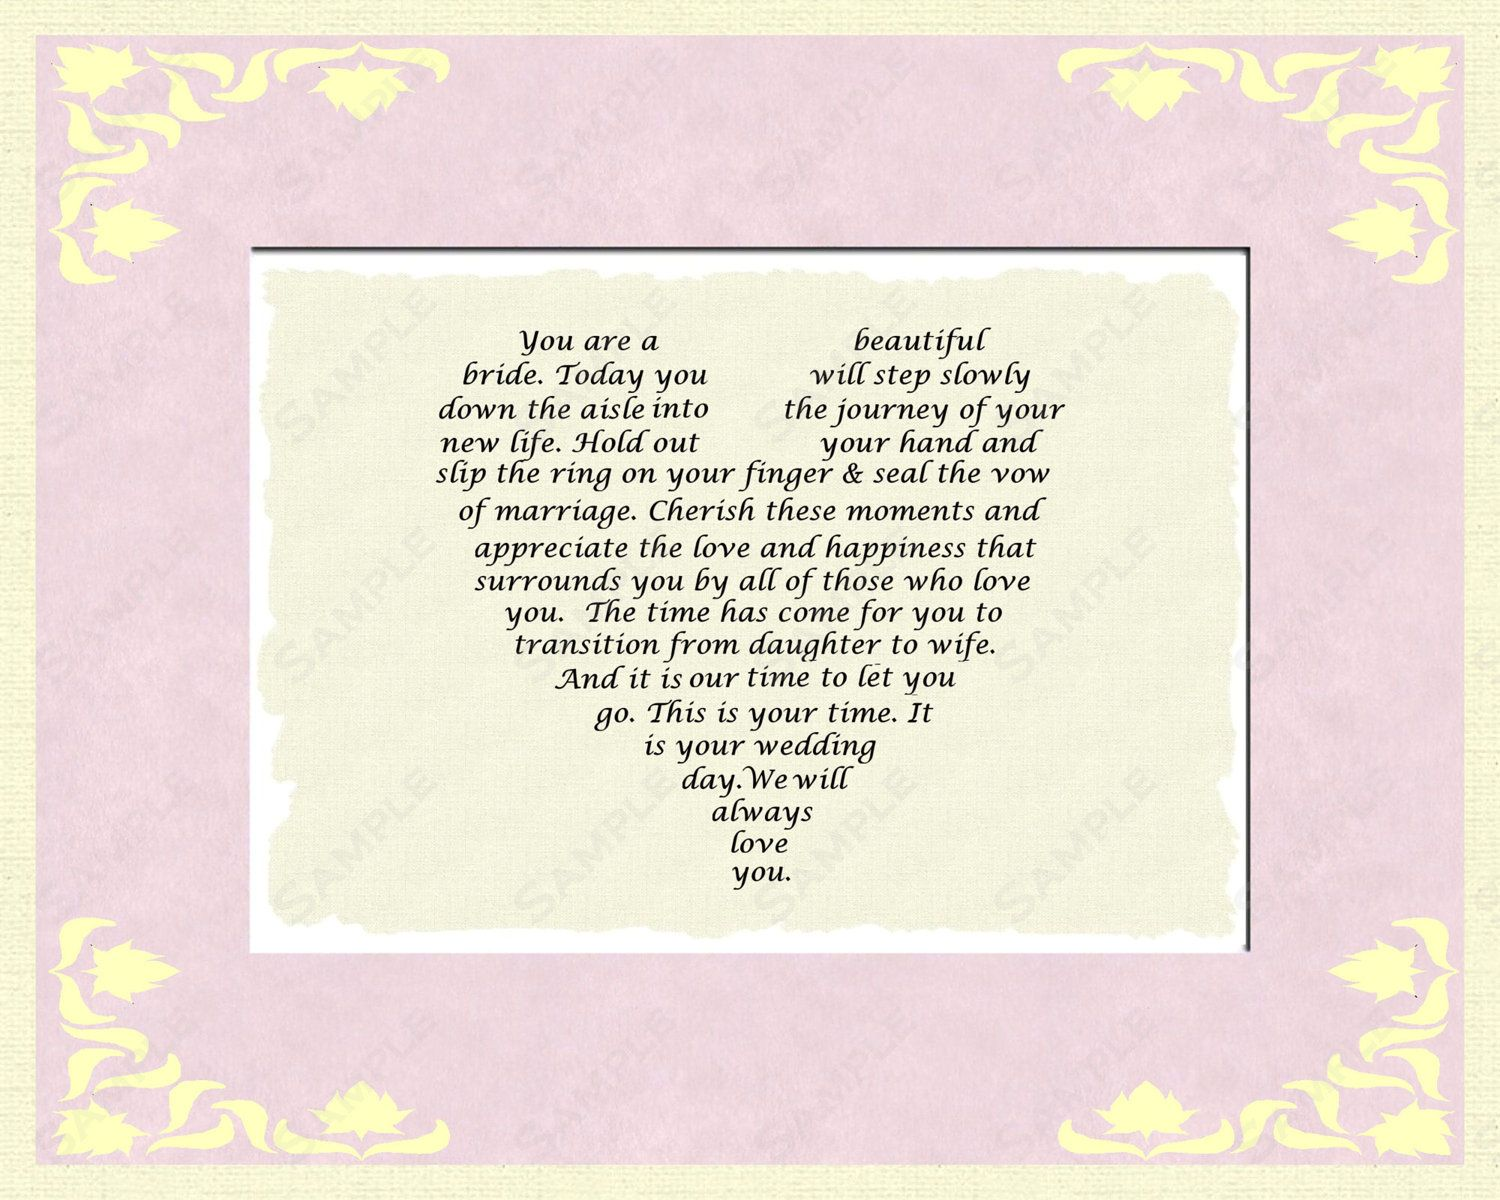 Poem From Mom To Daughter On Wedding Day 03